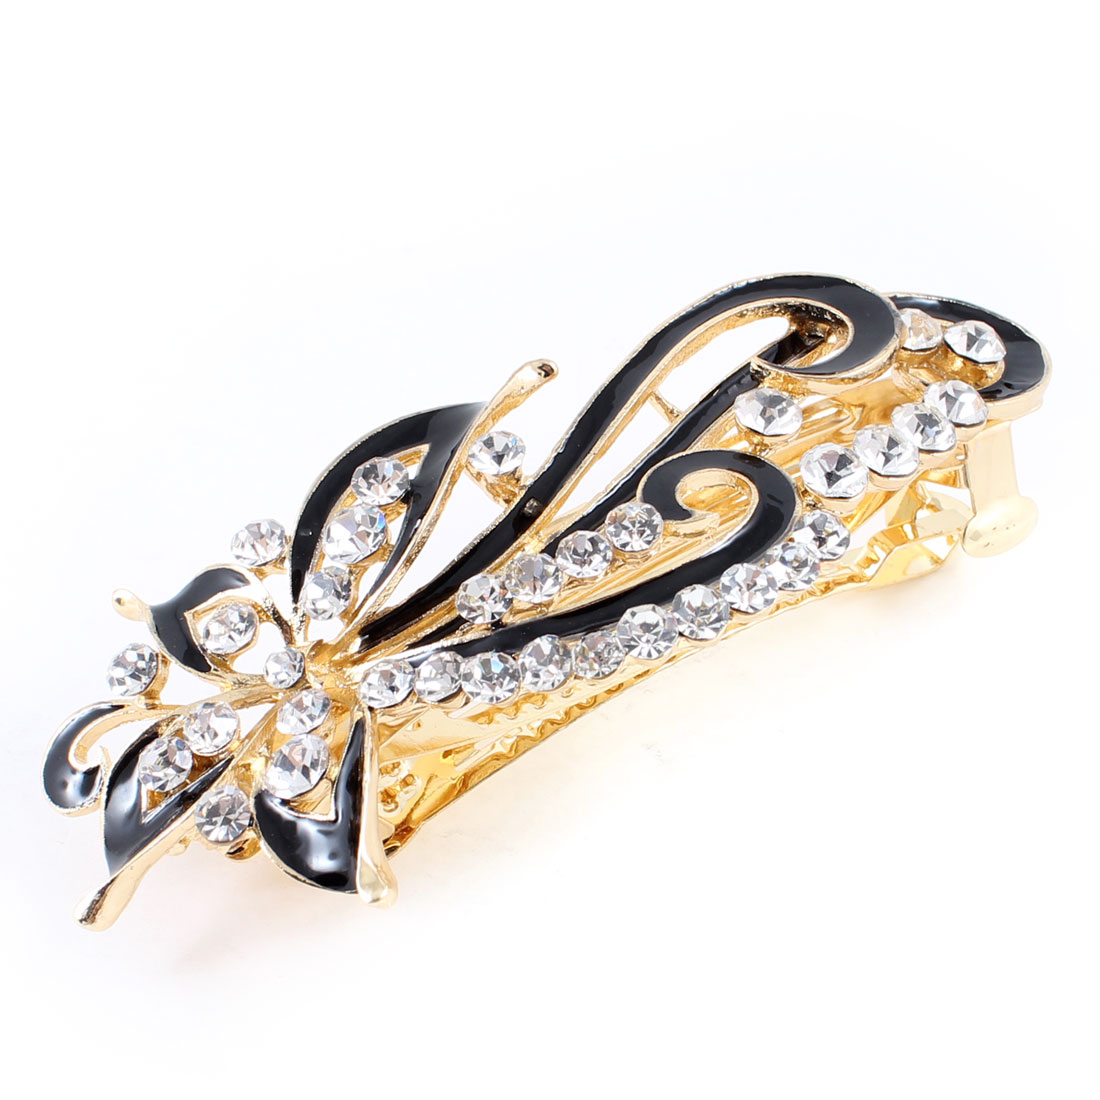 Metal Rhinestone Decor Flower Design Clip Hair French Barrette Gold Tone